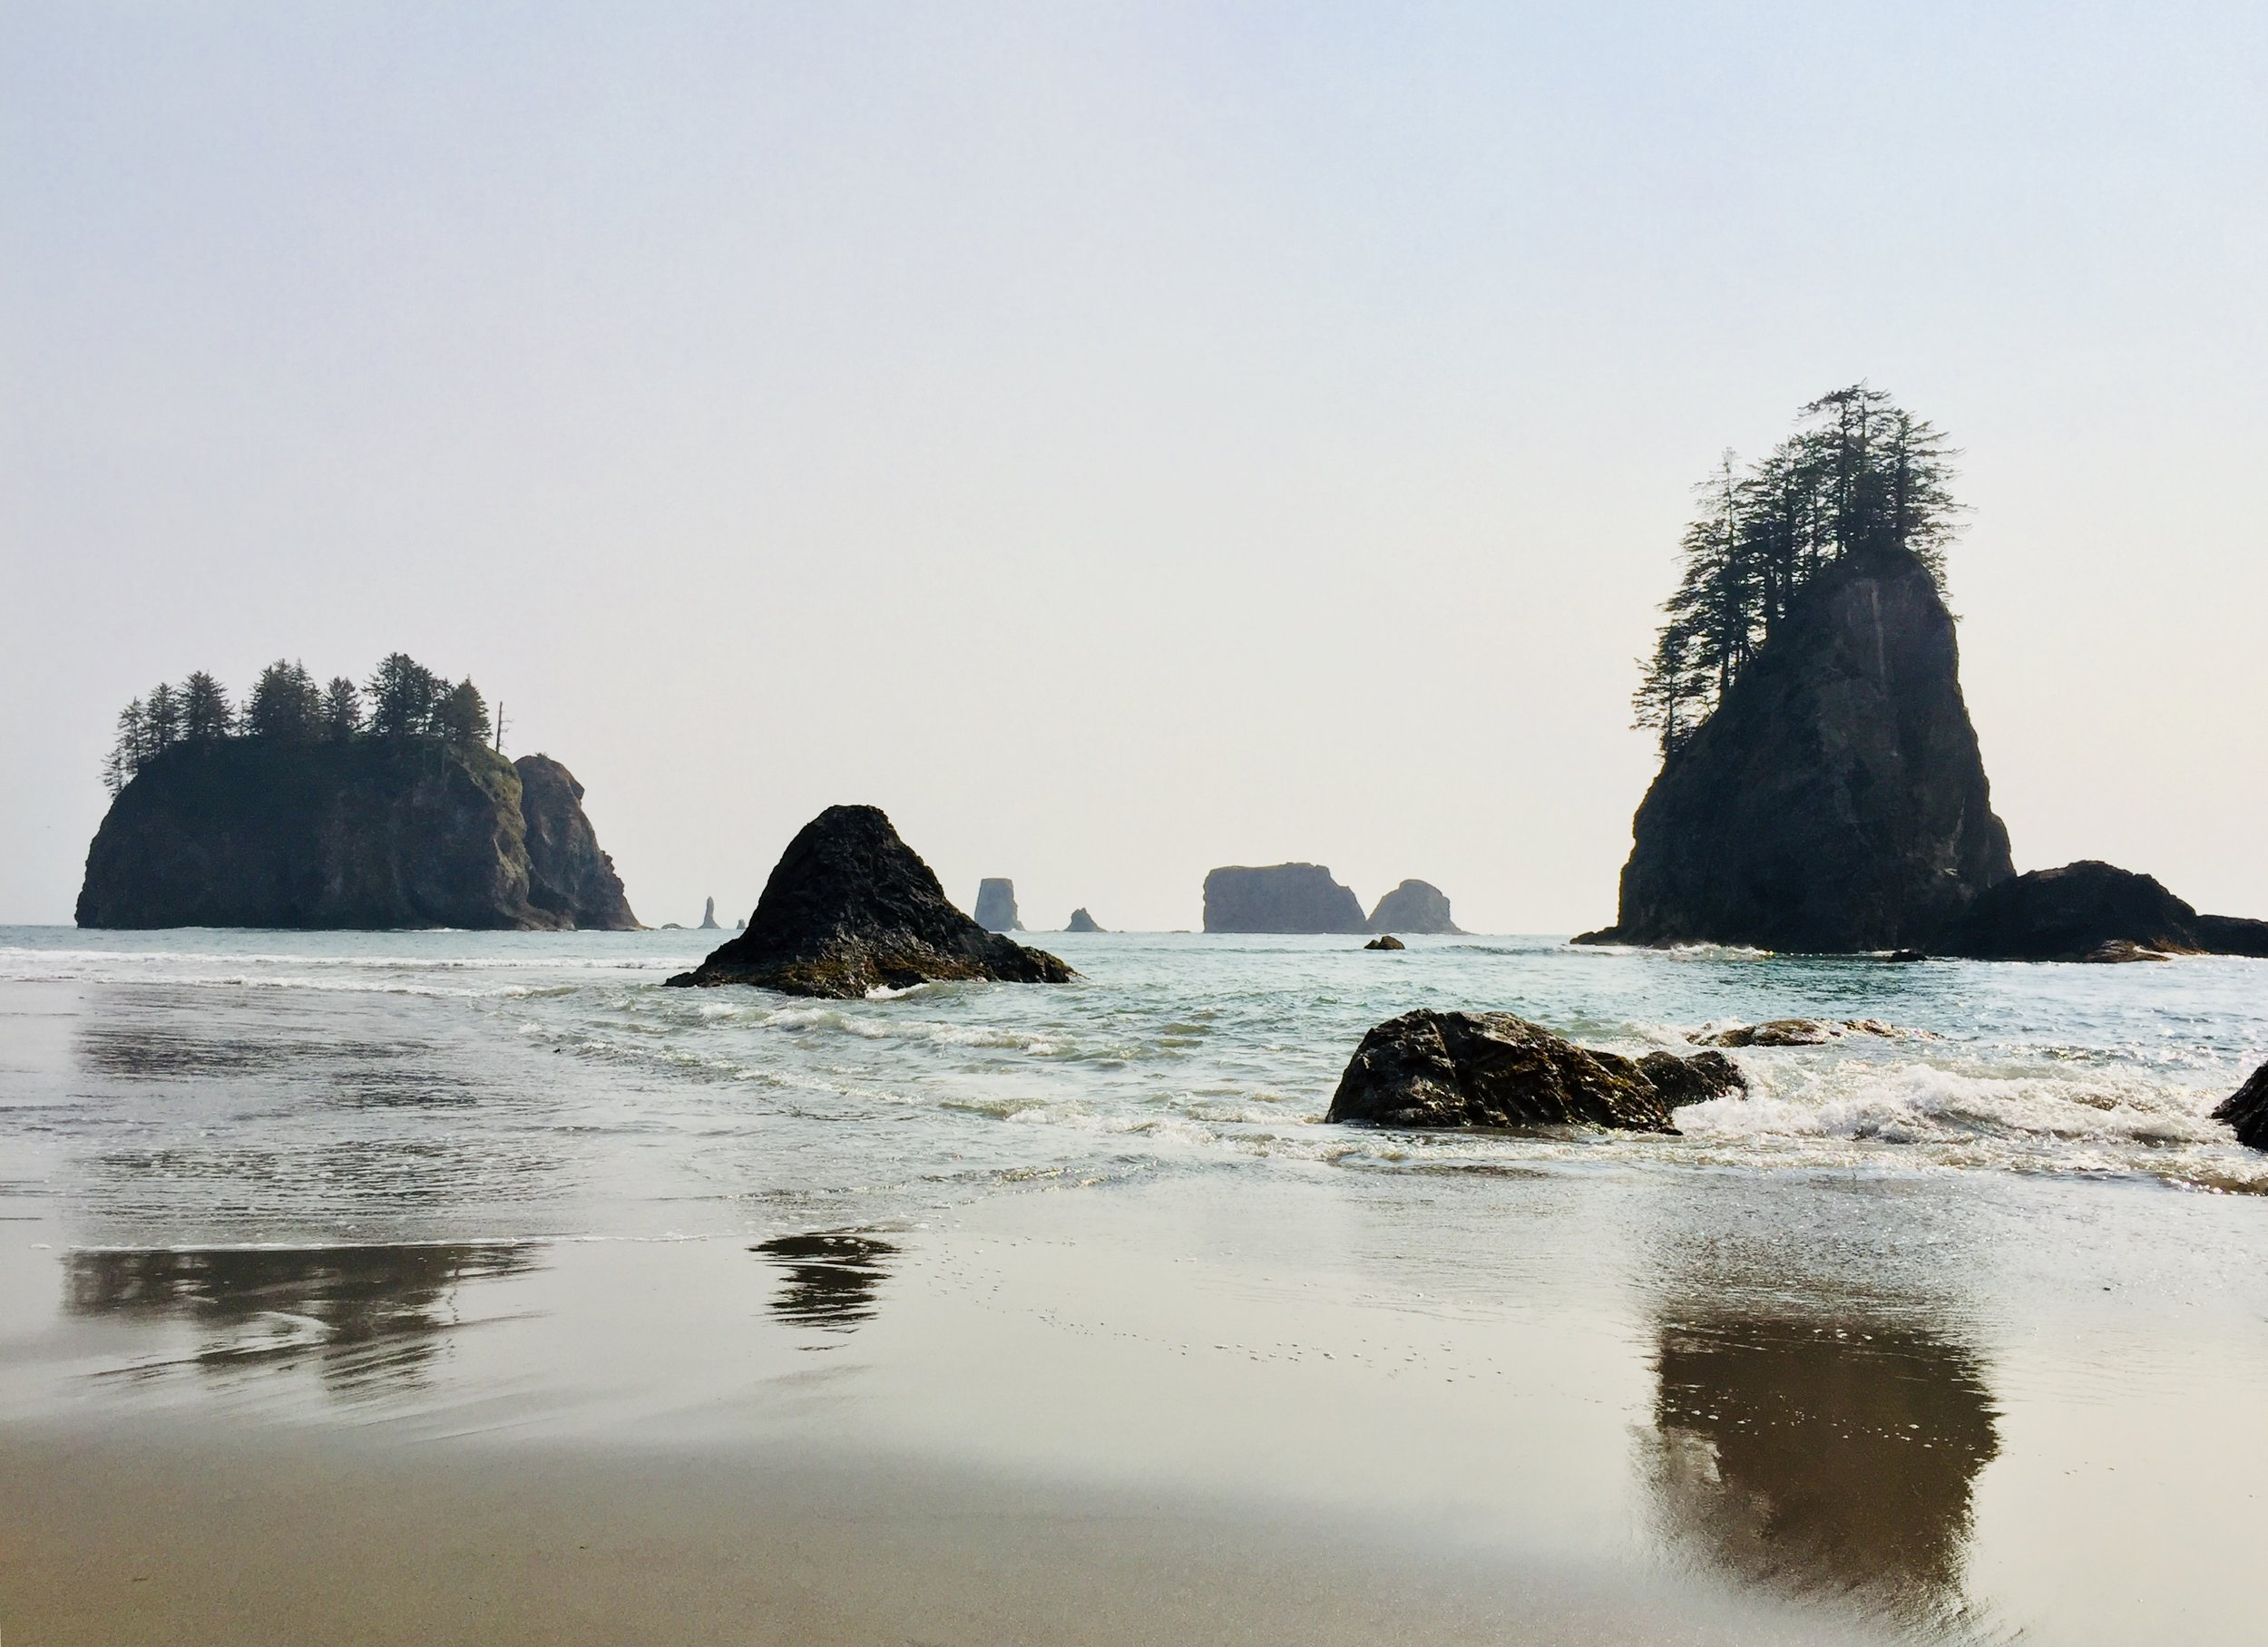 LA PUSH SECOND BEACH, QUILEUTE NATION, WASHINGTON